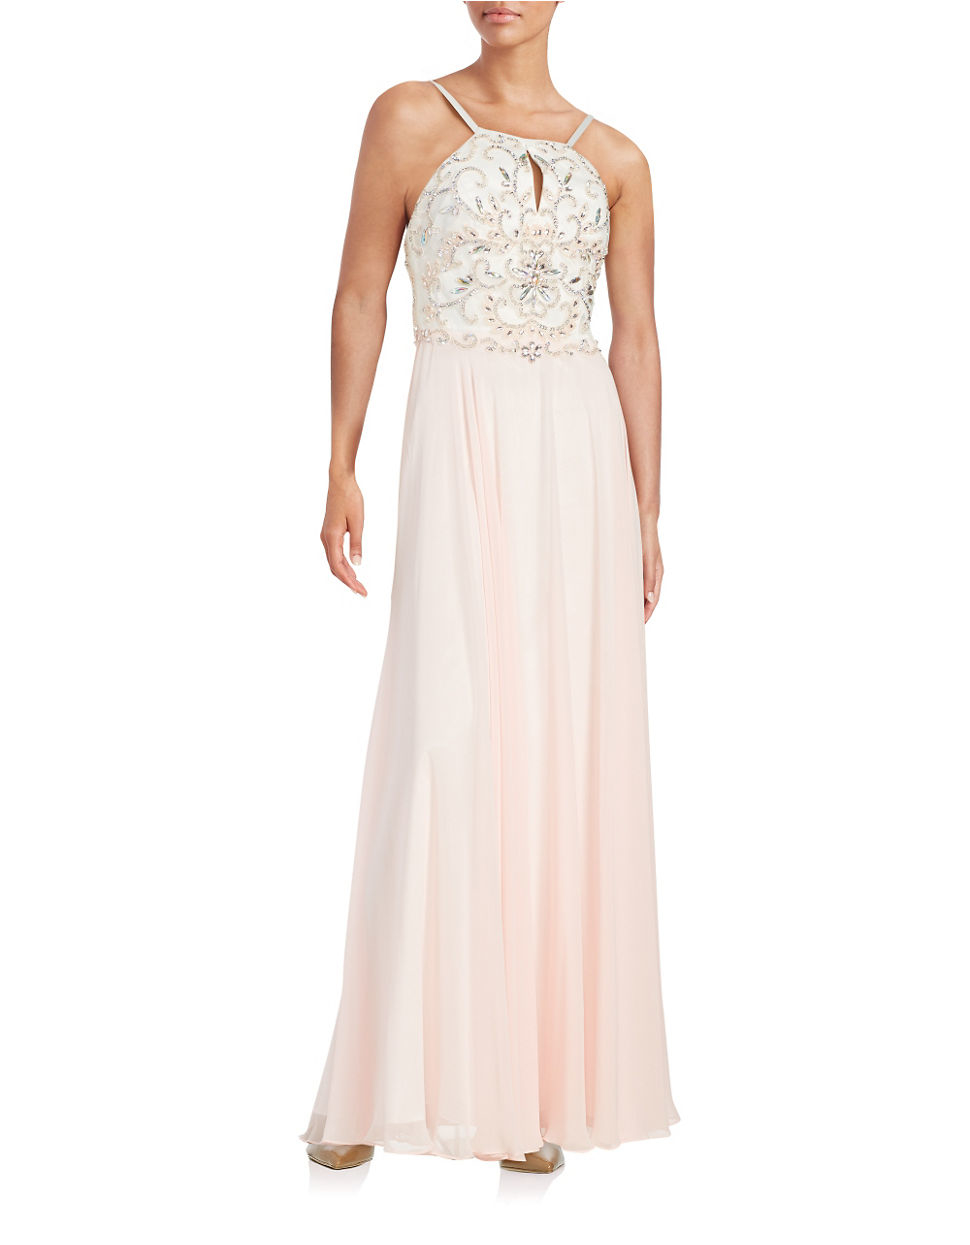 Pink Floor Length Xscape Mermaid Gown_Other dresses_dressesss